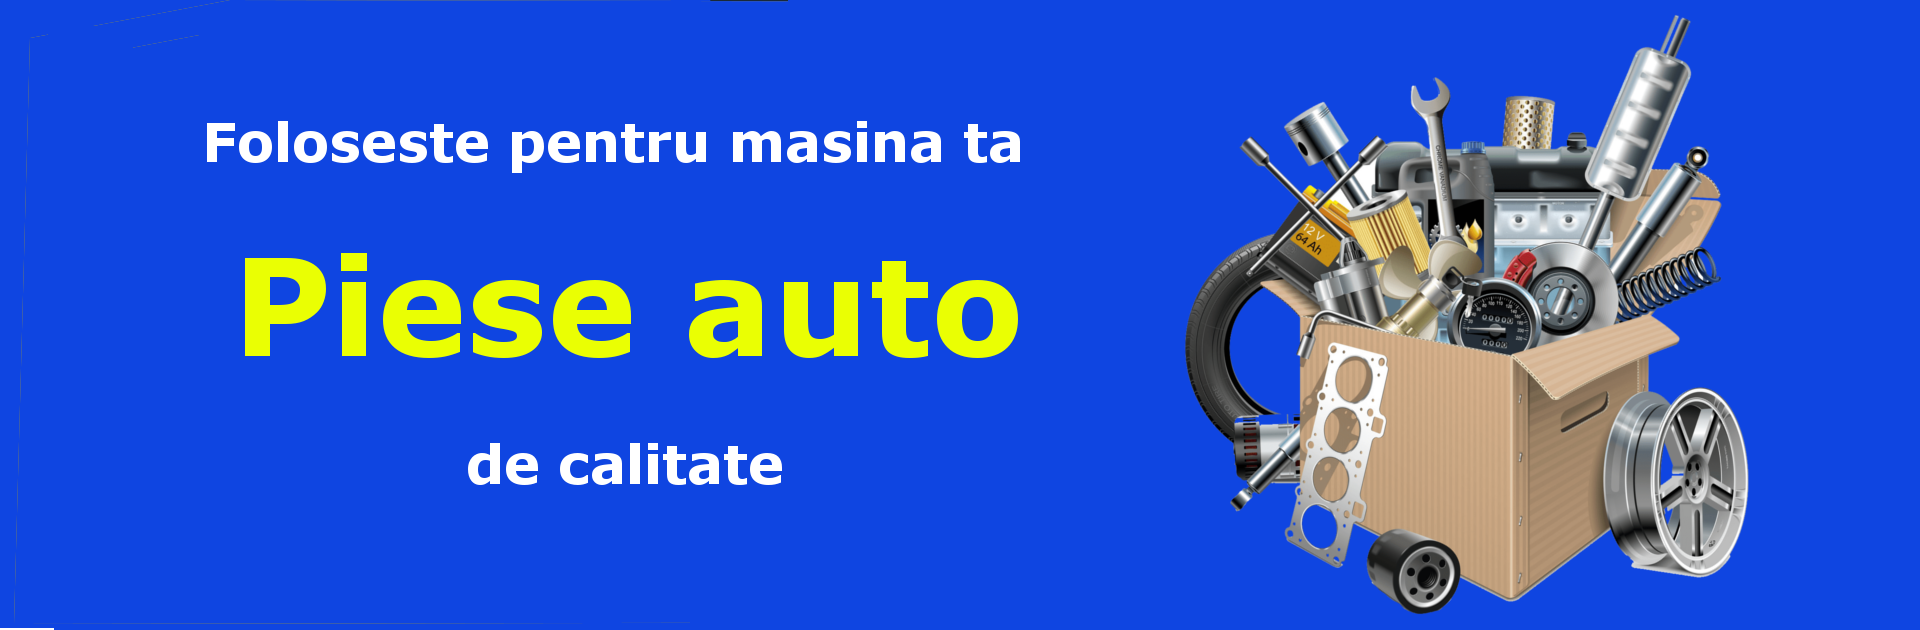 Banner pagina piese auto